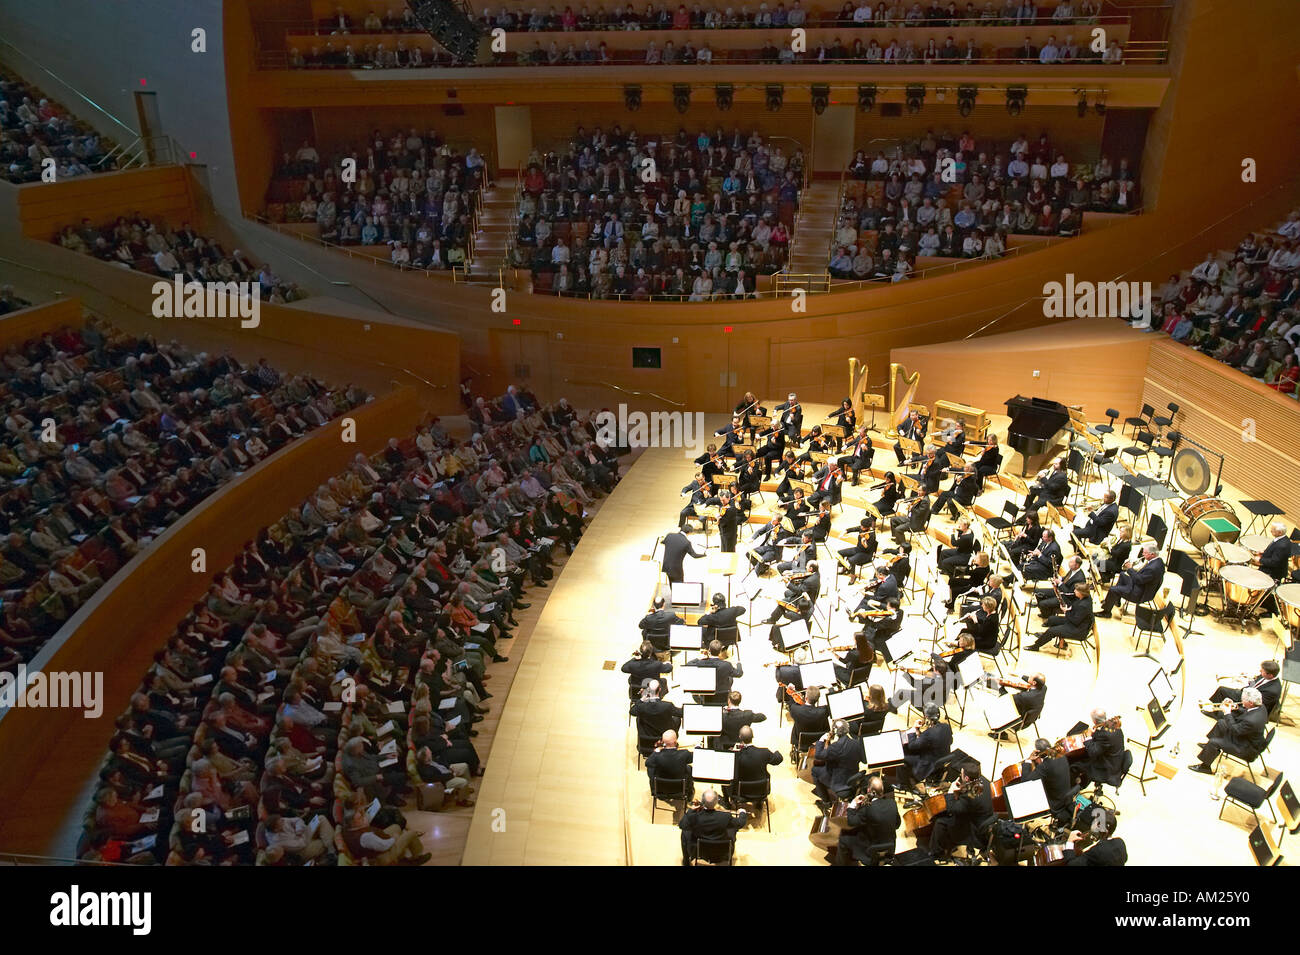 The Los Angeles Philharmonic orchestra performing at the new Disney Concert Hall designed by Frank Gehry - Stock Image